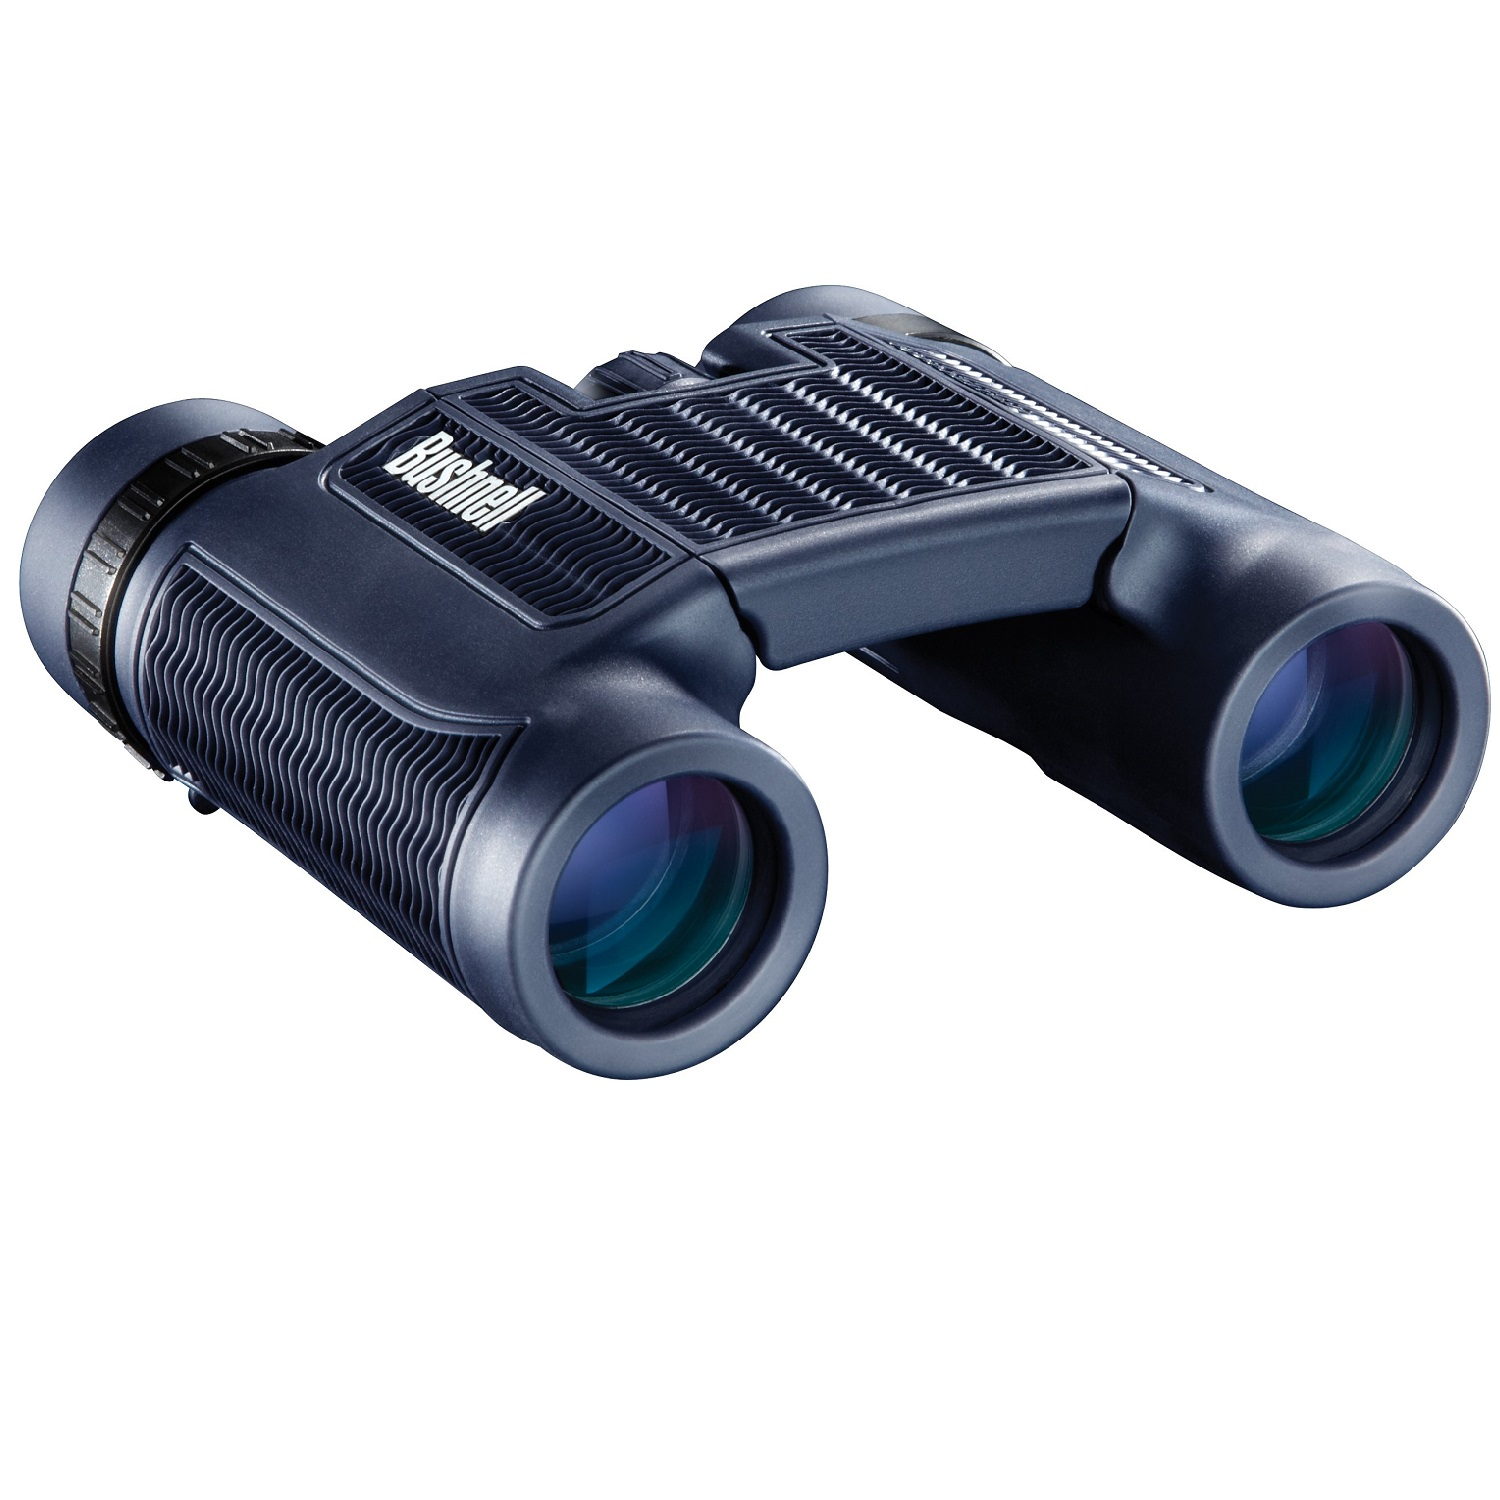 Bushnell H2O Waterproof Binocular 10X25 BAK-4-Black by Bushnell